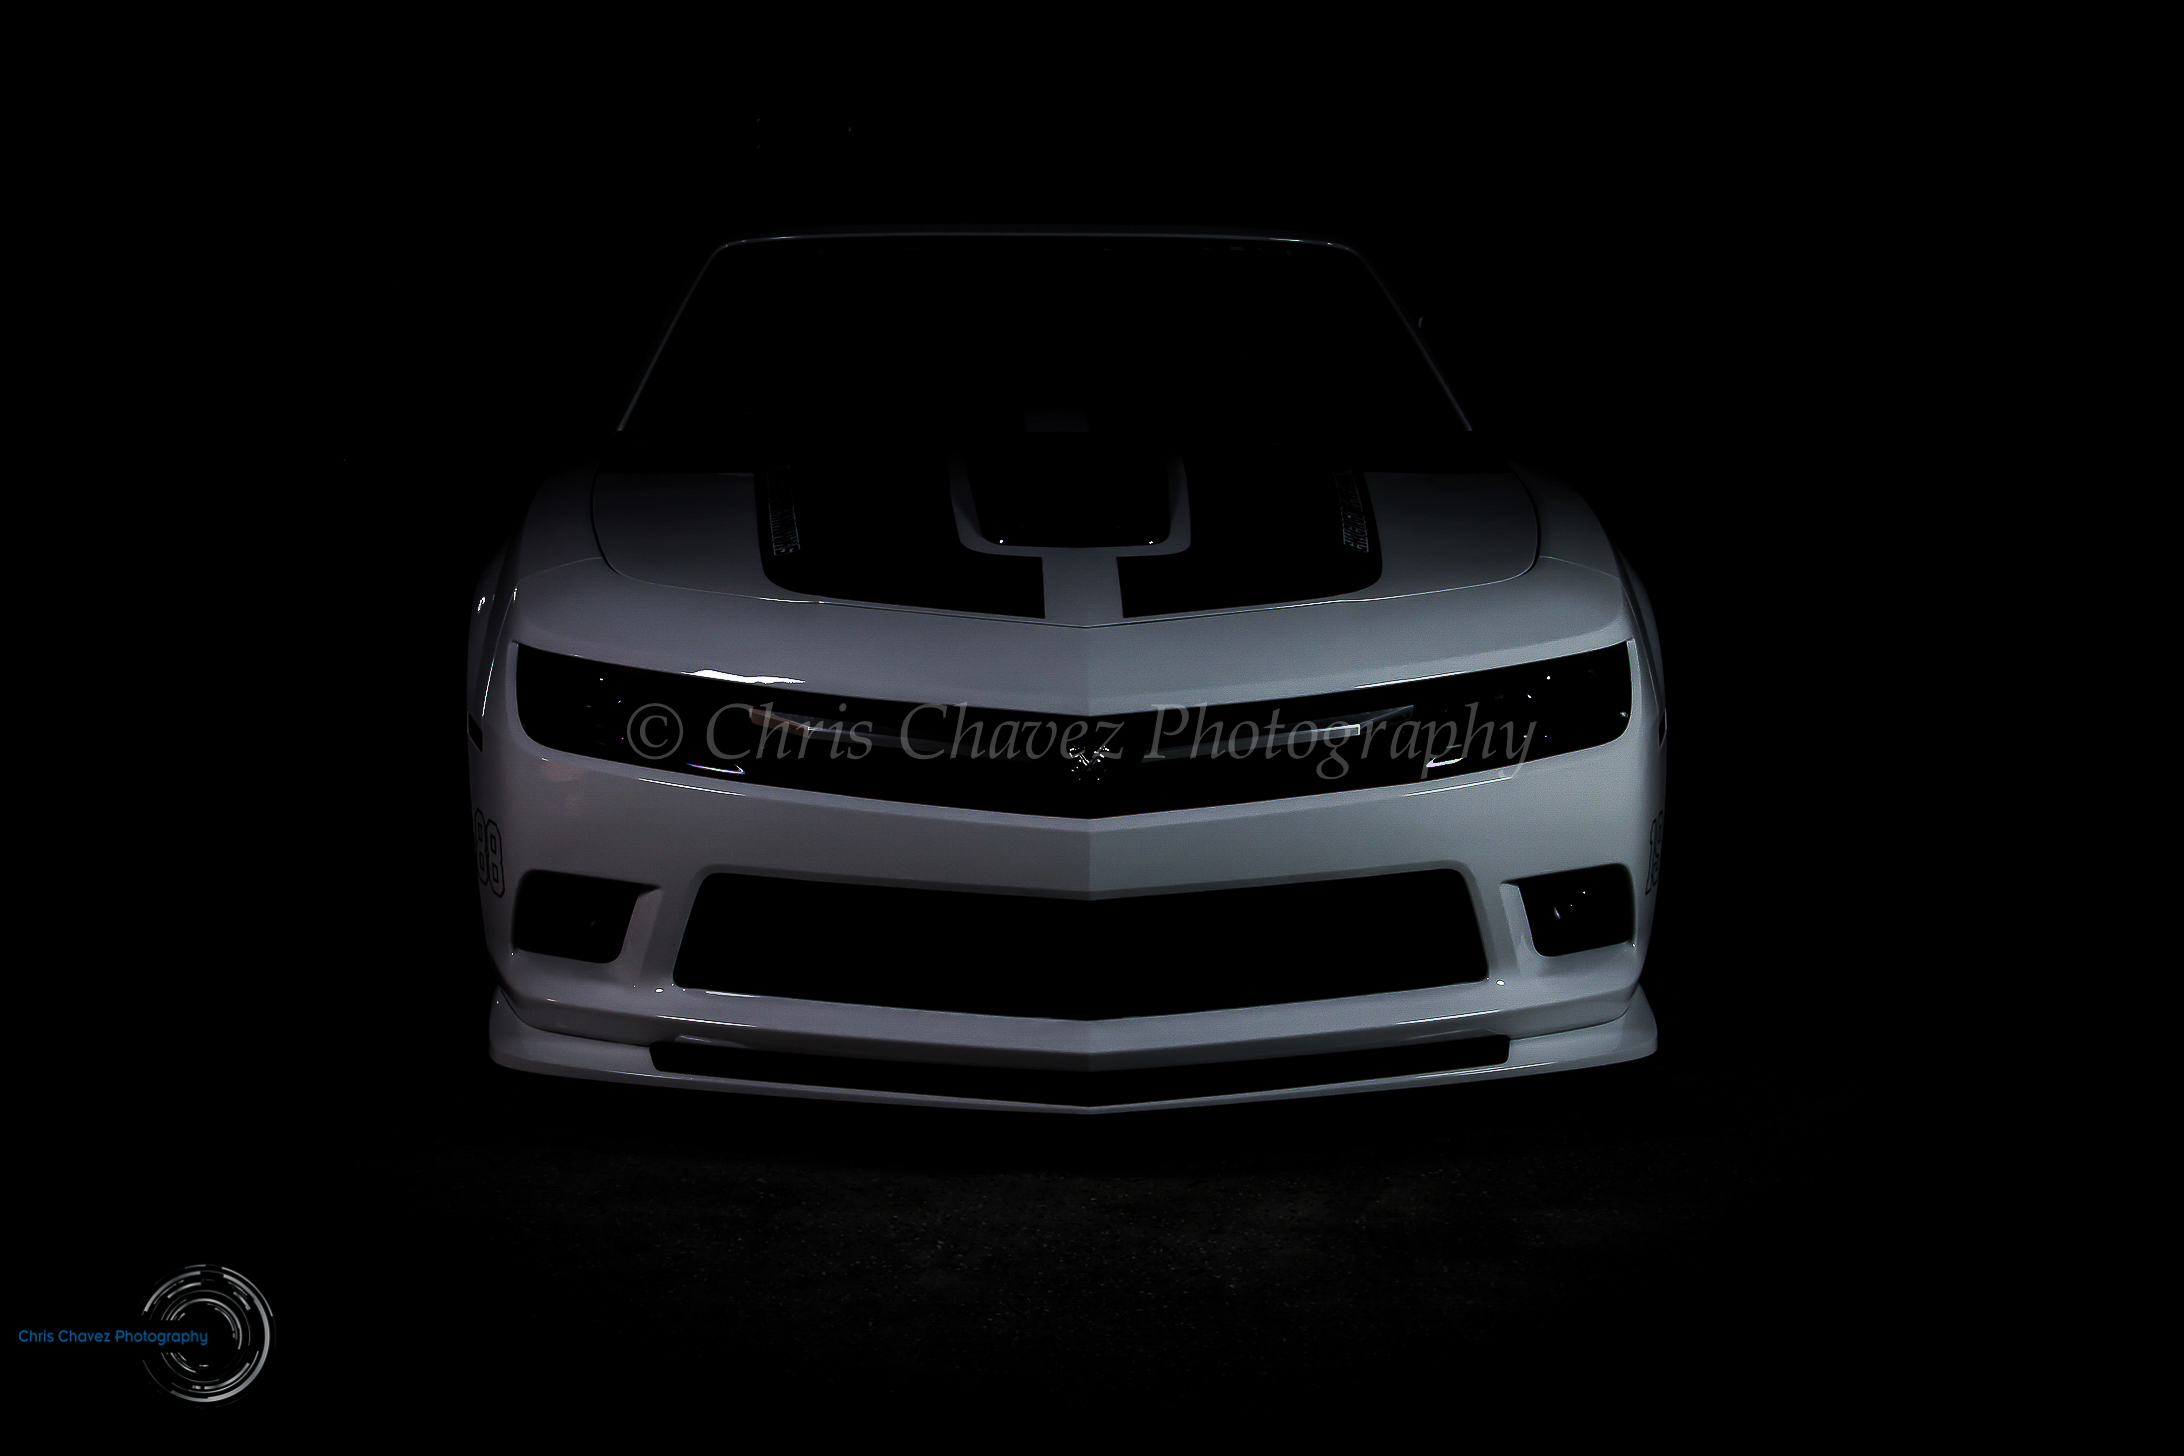 I wonder how the new 2015 Chicago Blackhawks Camaro SS Convertible will look.  Visit Chevydriveschicago.com for up to date information about the build.  Click on image to be re-directed.  Follow them today on Facebook.